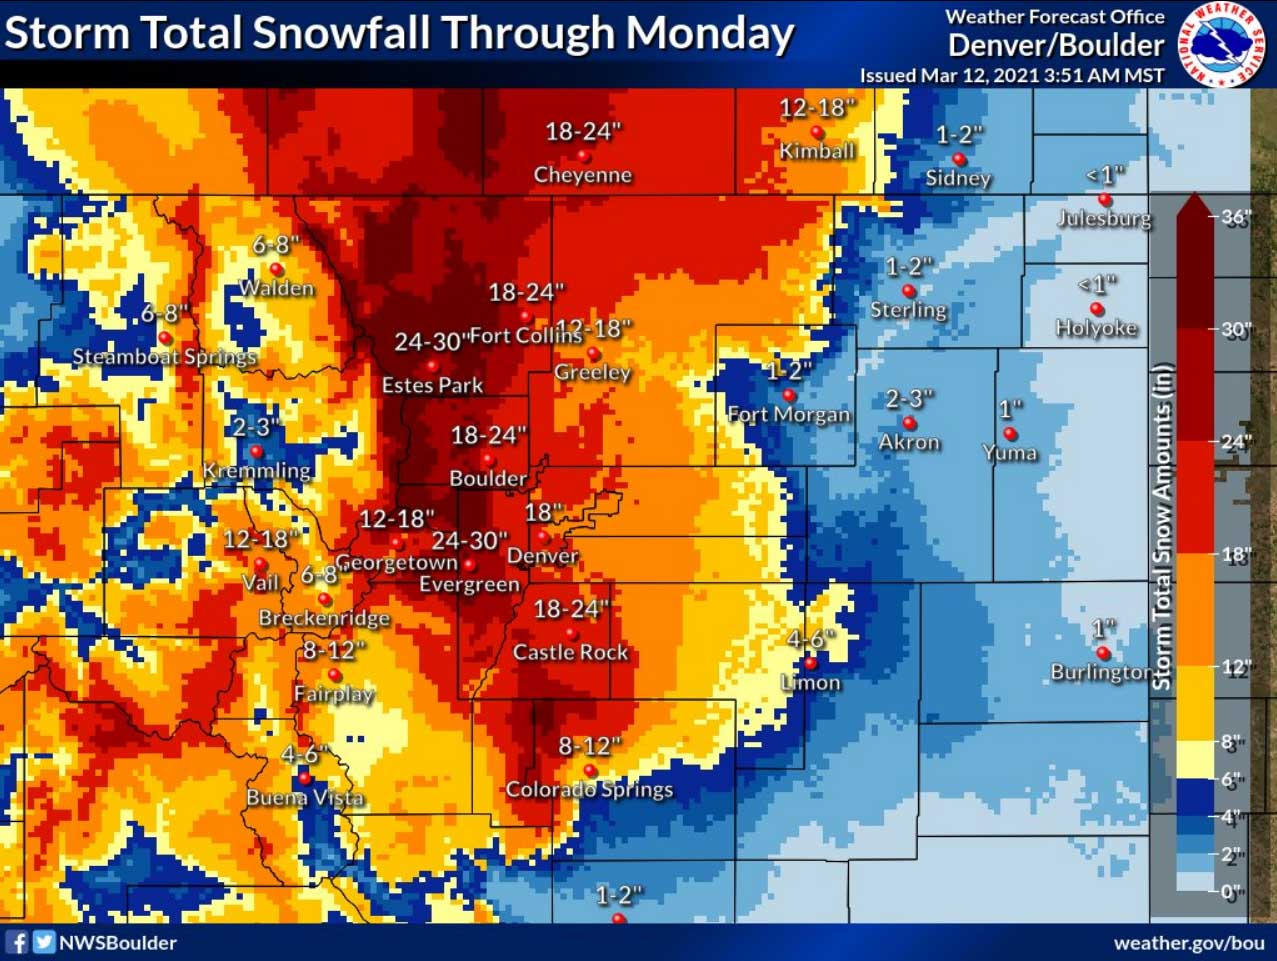 historic-winter-storm-xylia-colorado-snow-severe-weather-outbreak-estimated-snowfall-nws-boulder